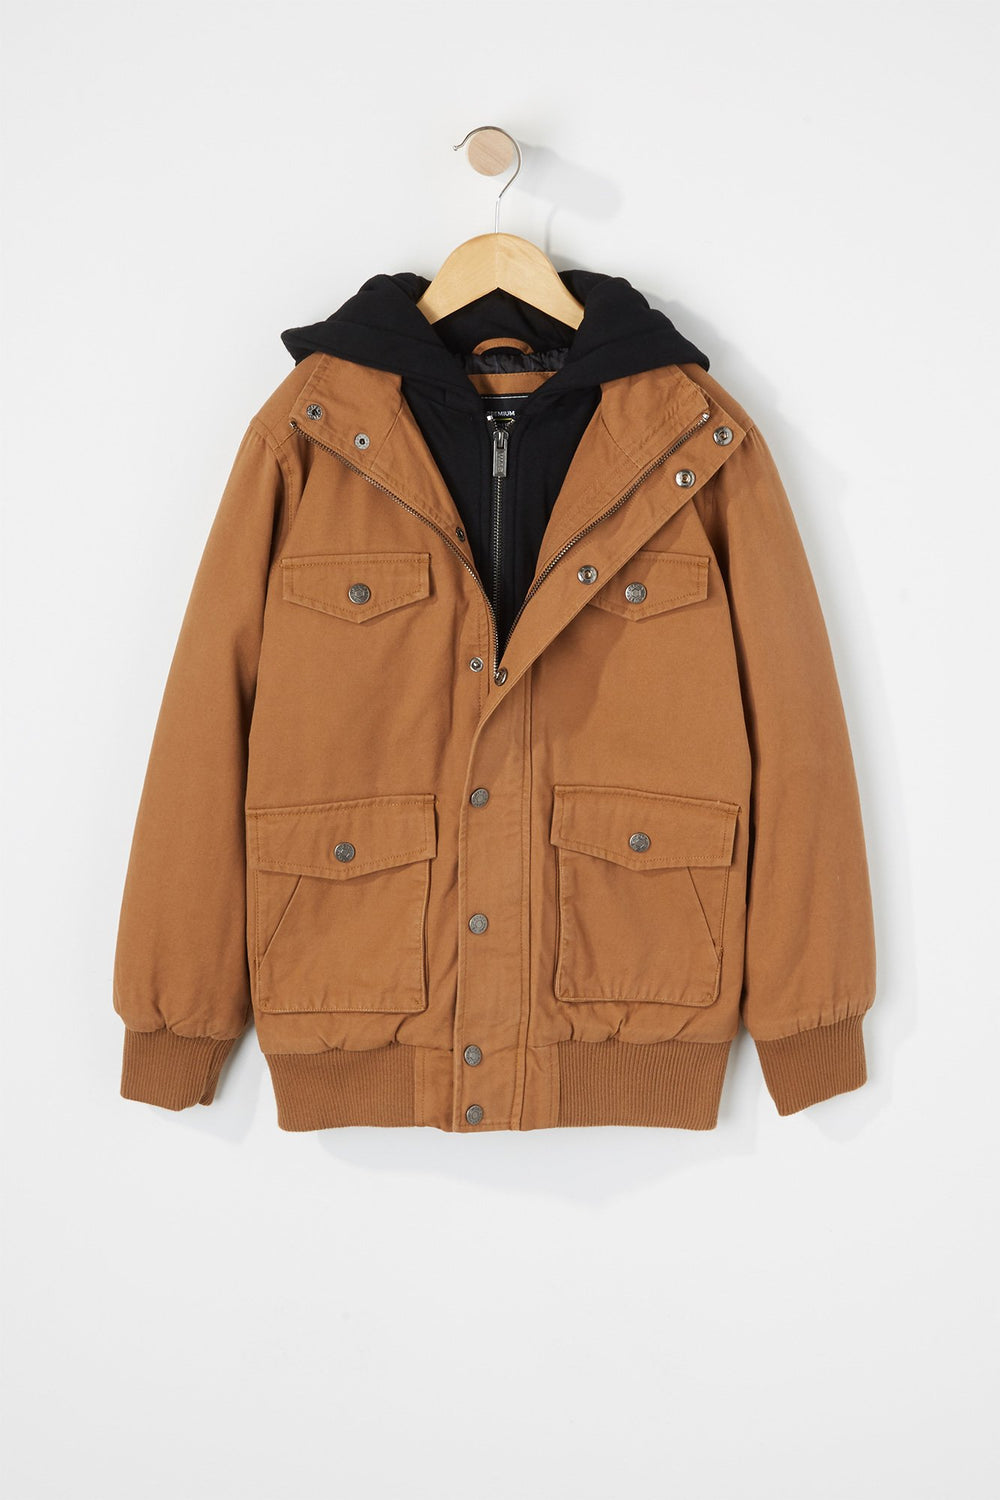 West49 Boys Hooded Jacket Tan